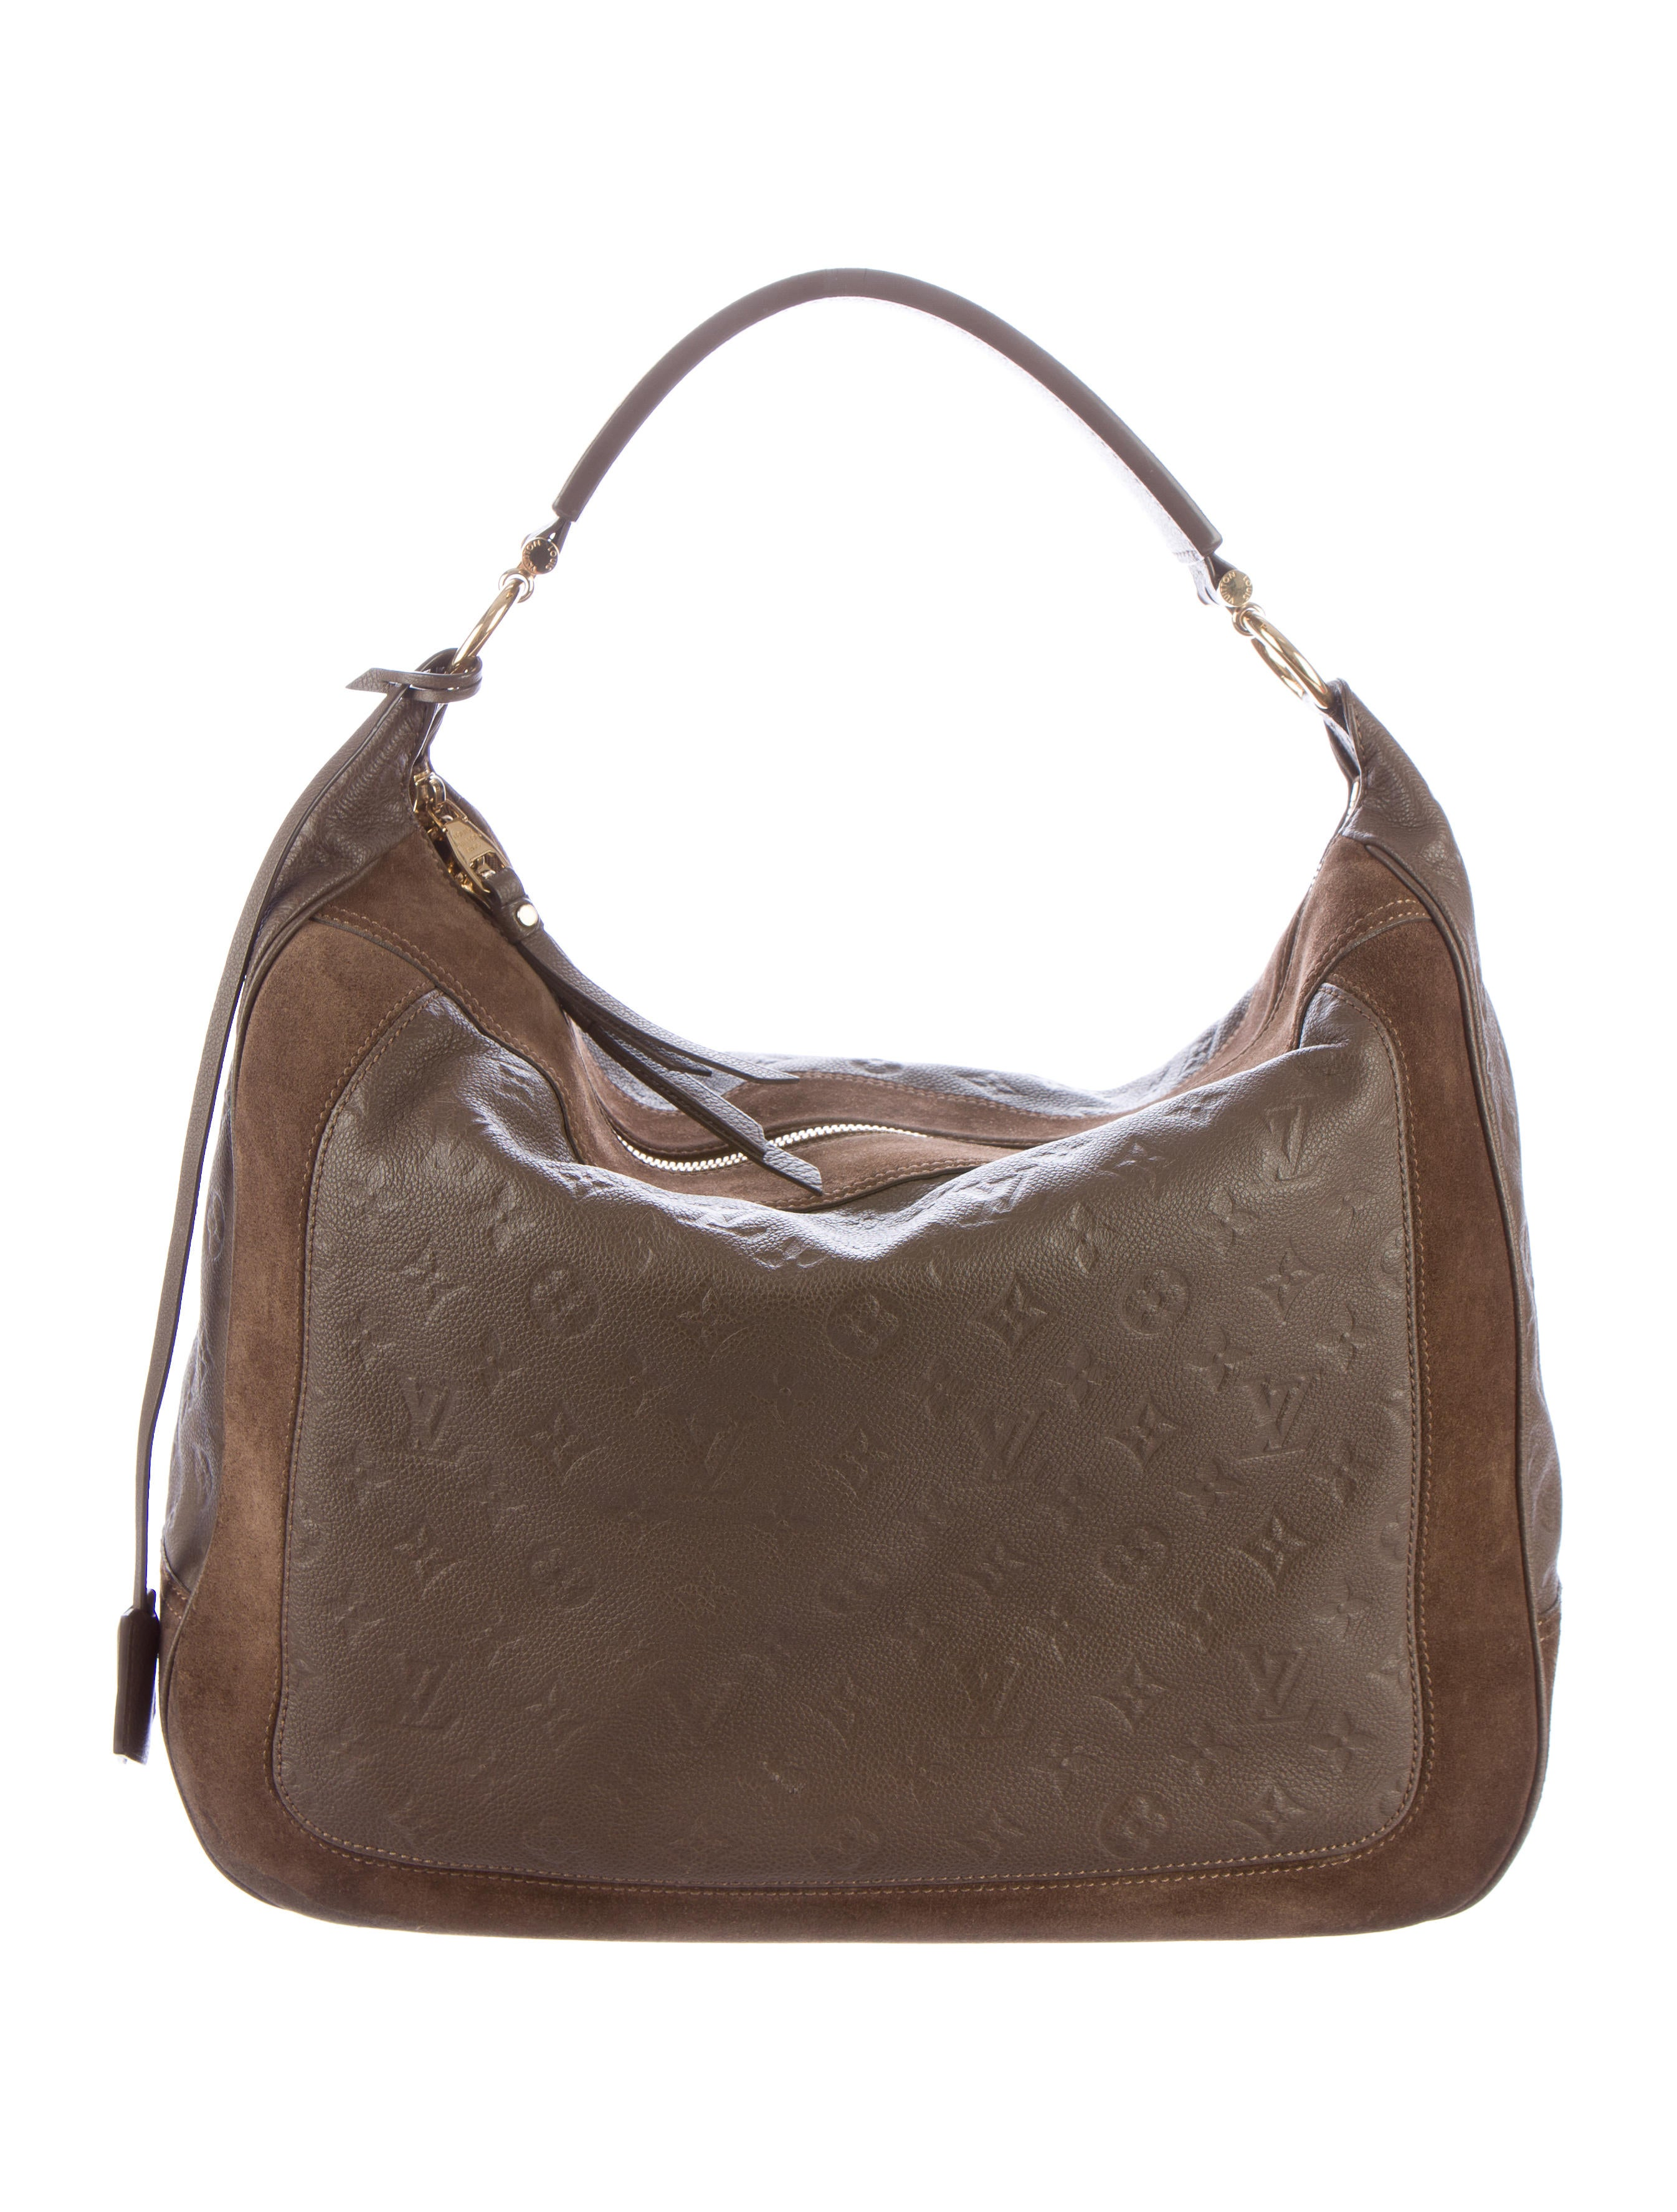 Louis Vuitton Empreinte Audacieuse GM - Handbags - LOU84505  78e062786c445